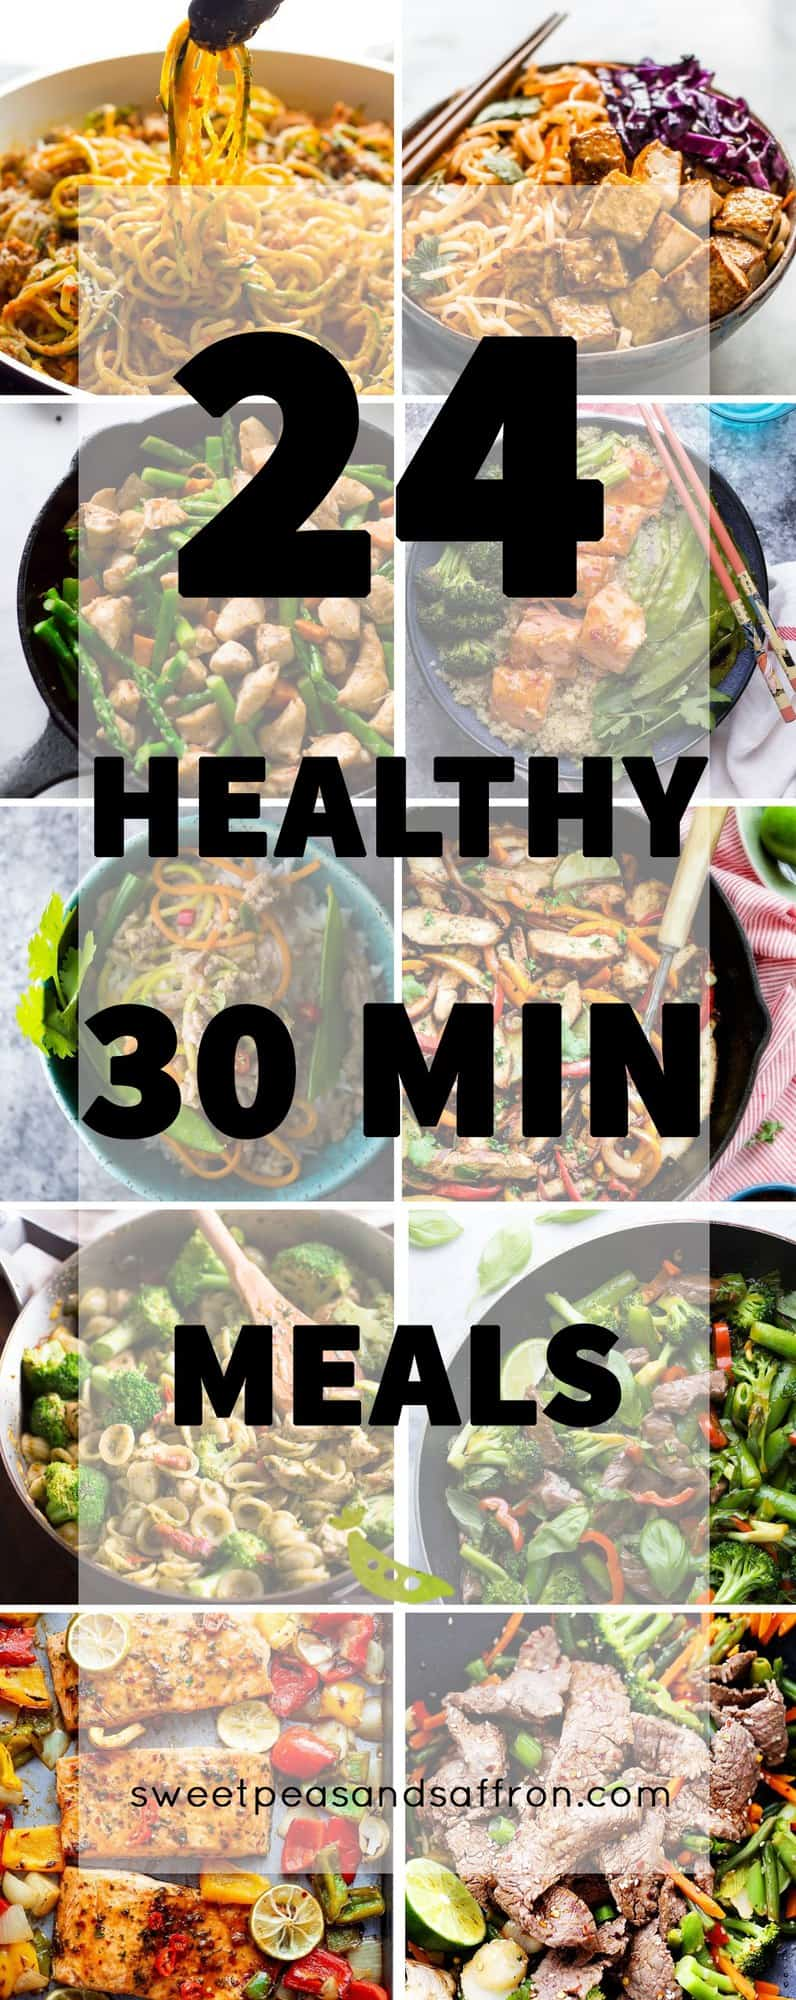 24 Healthy 30 Minute Meals